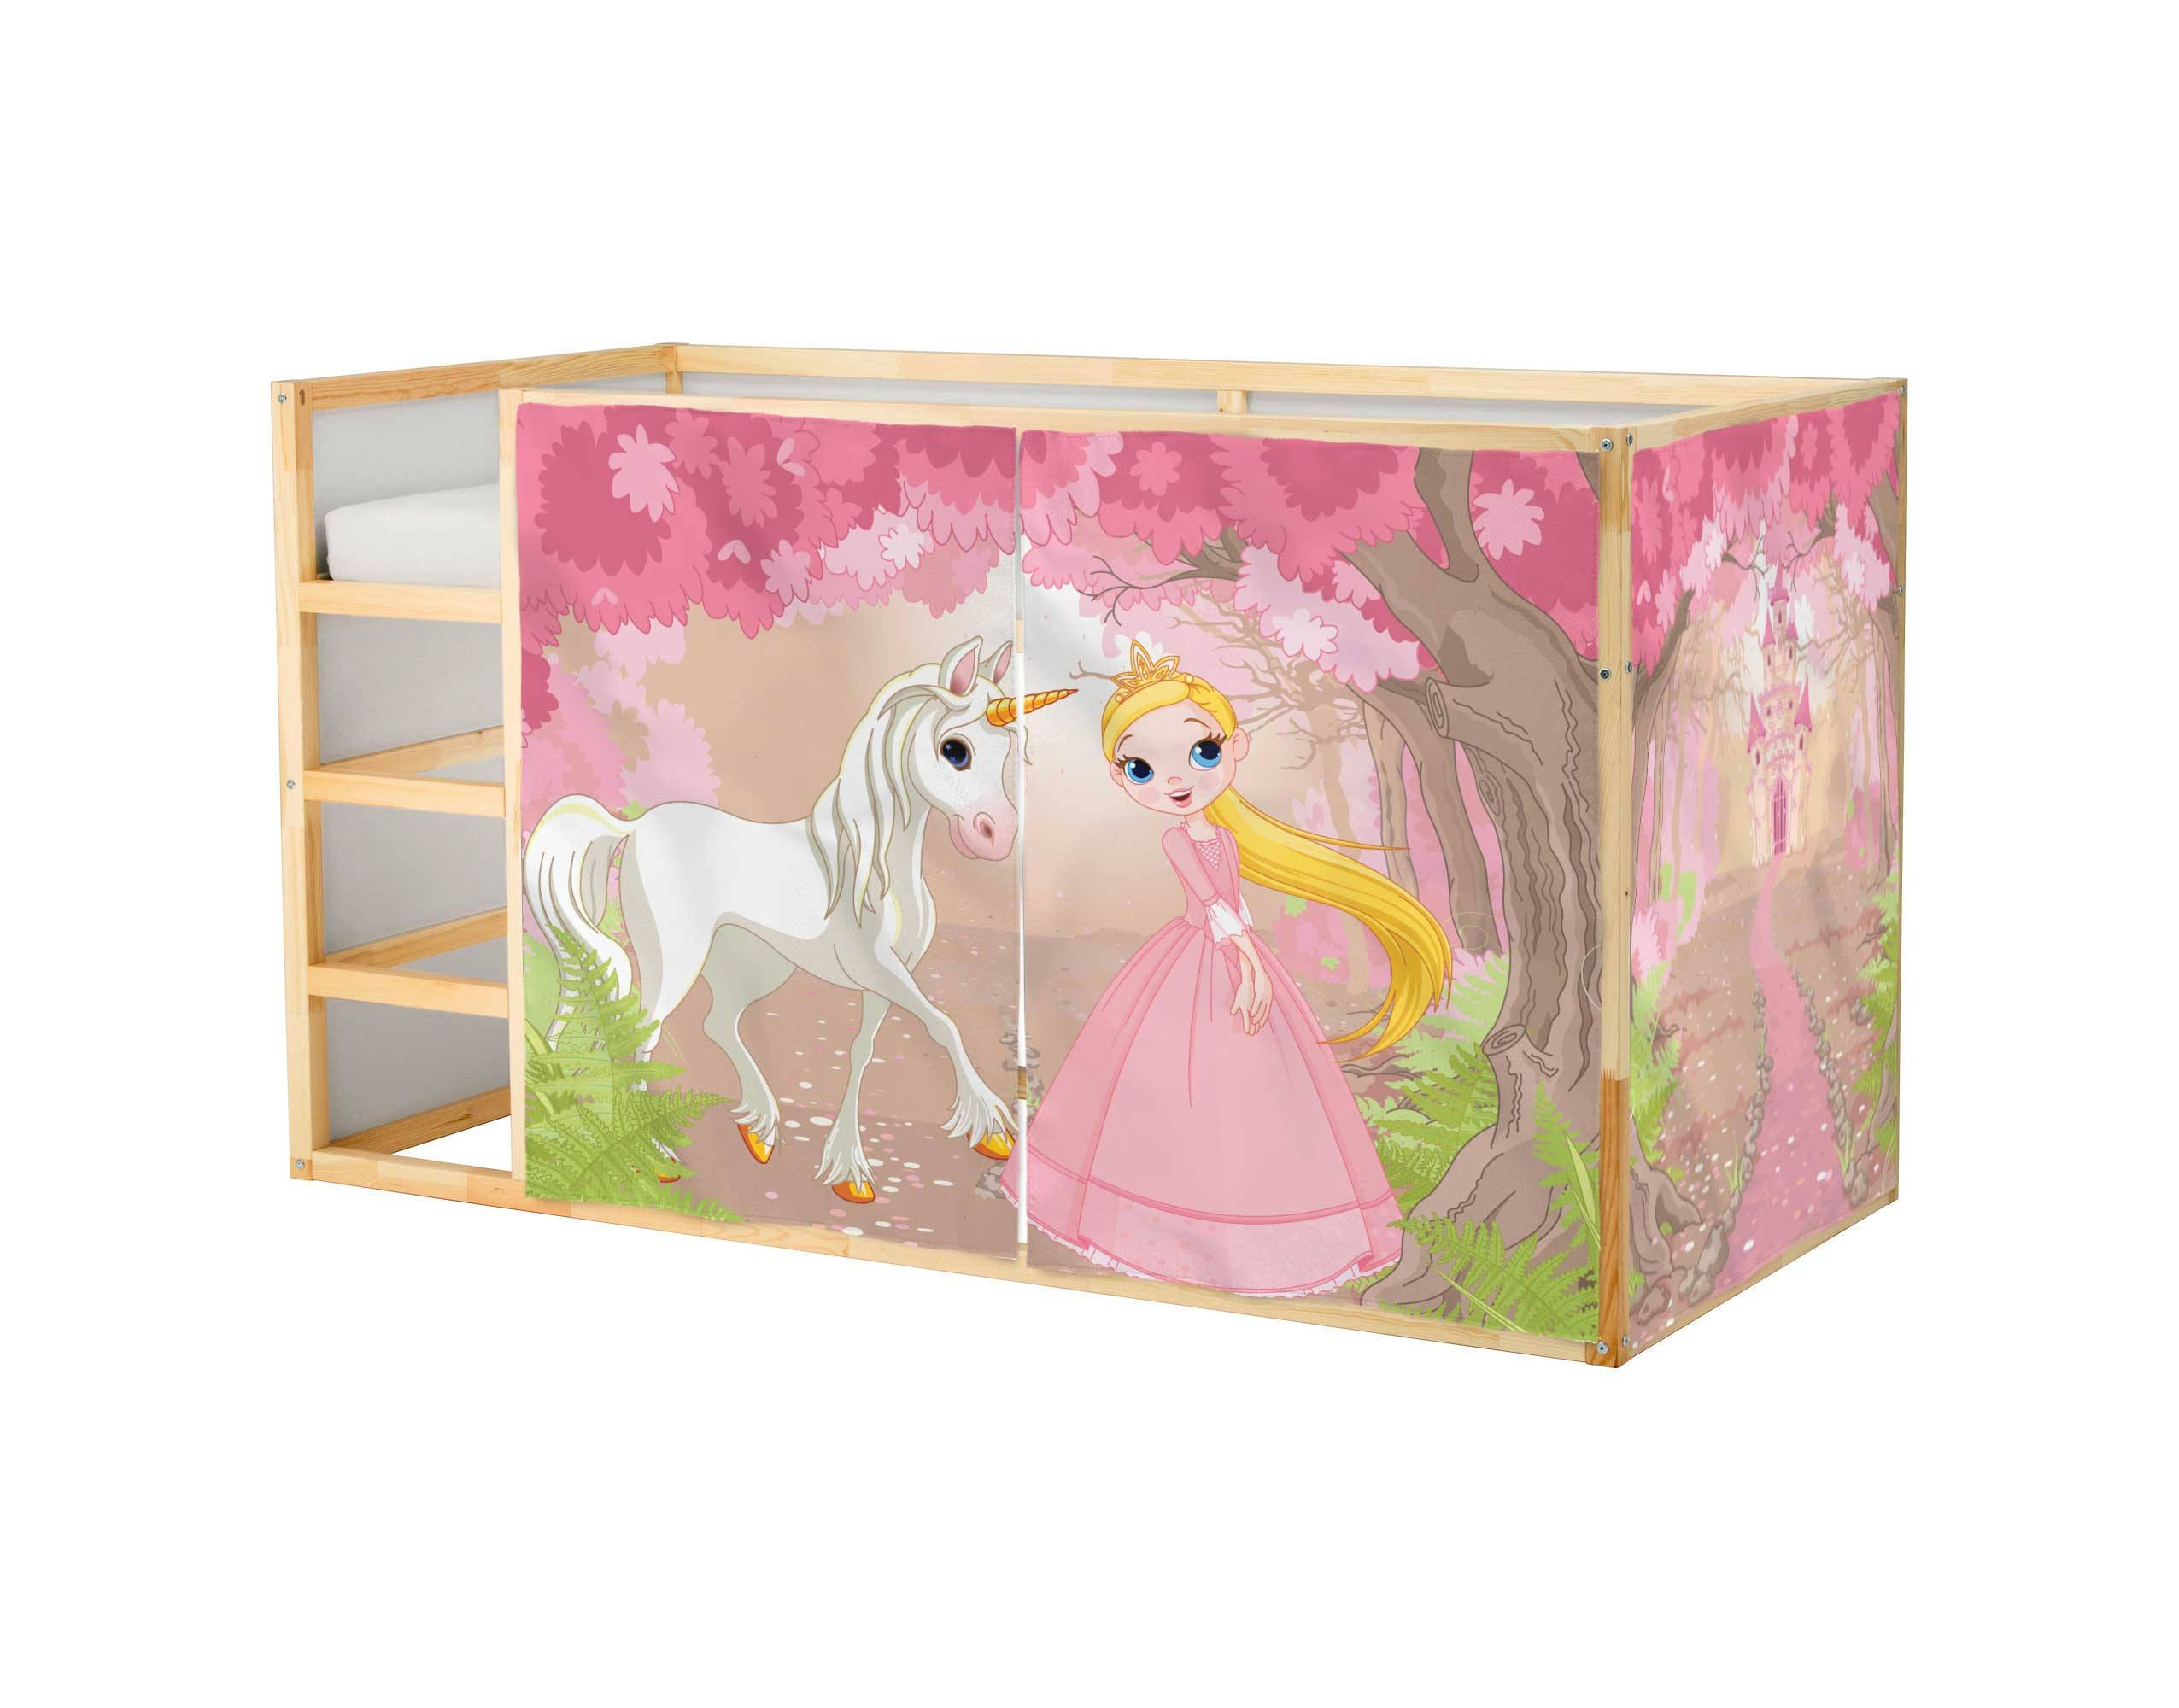 Playhouse Ikea Kura Bed Princess Playhouse Curtains Loft Bed Kura